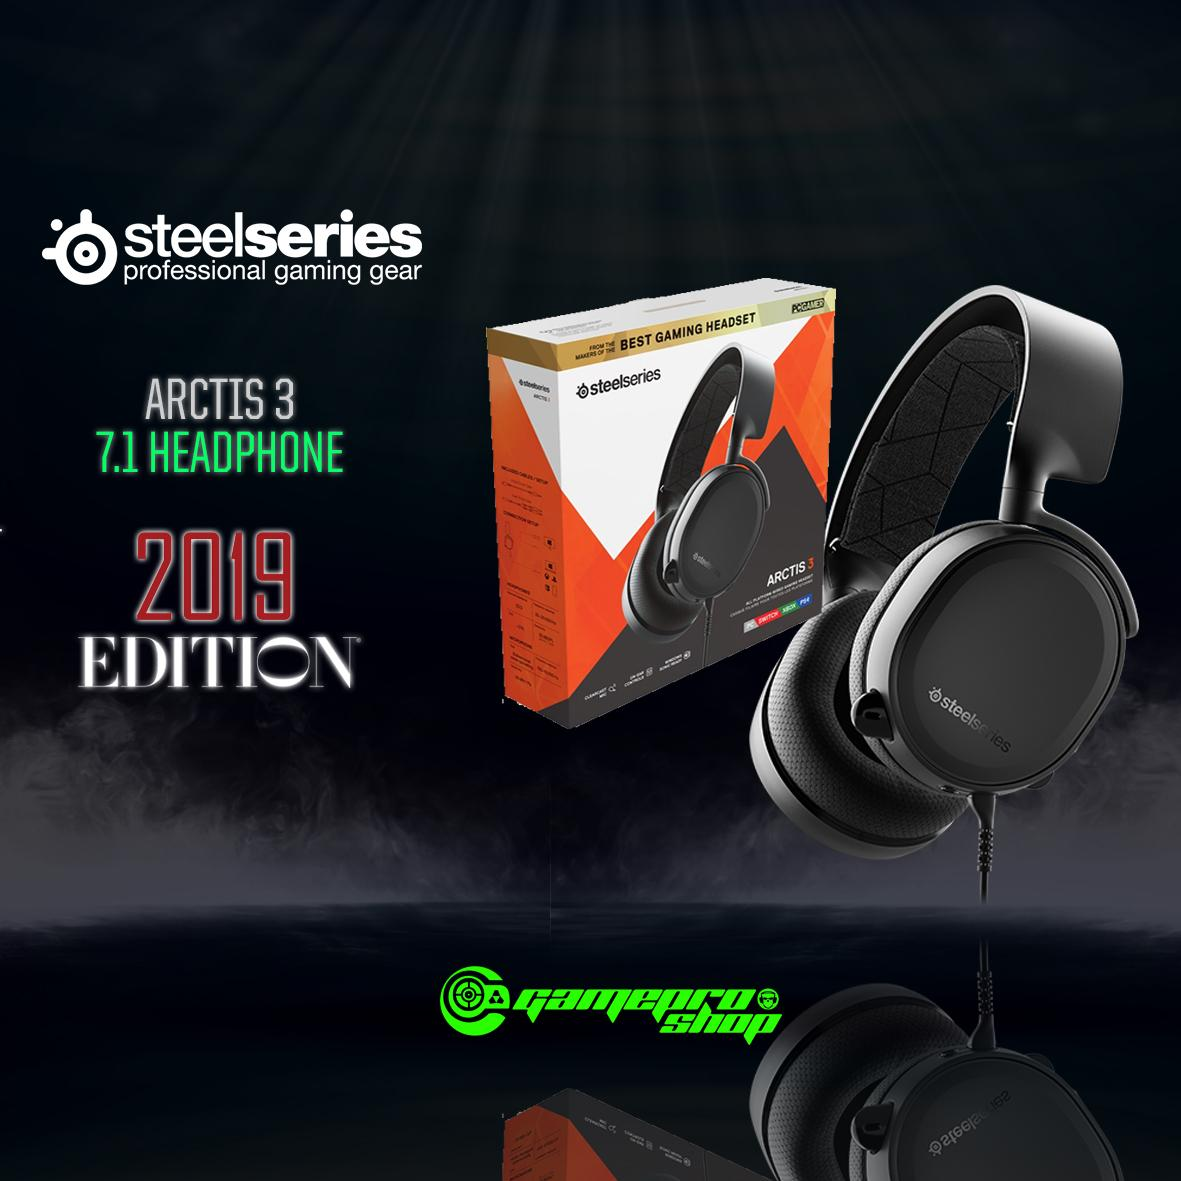 STEELSERIES ARCTIS 3 BLACK 7.1 HEADPHONE - 2019 EDITION *CNY PROMO*